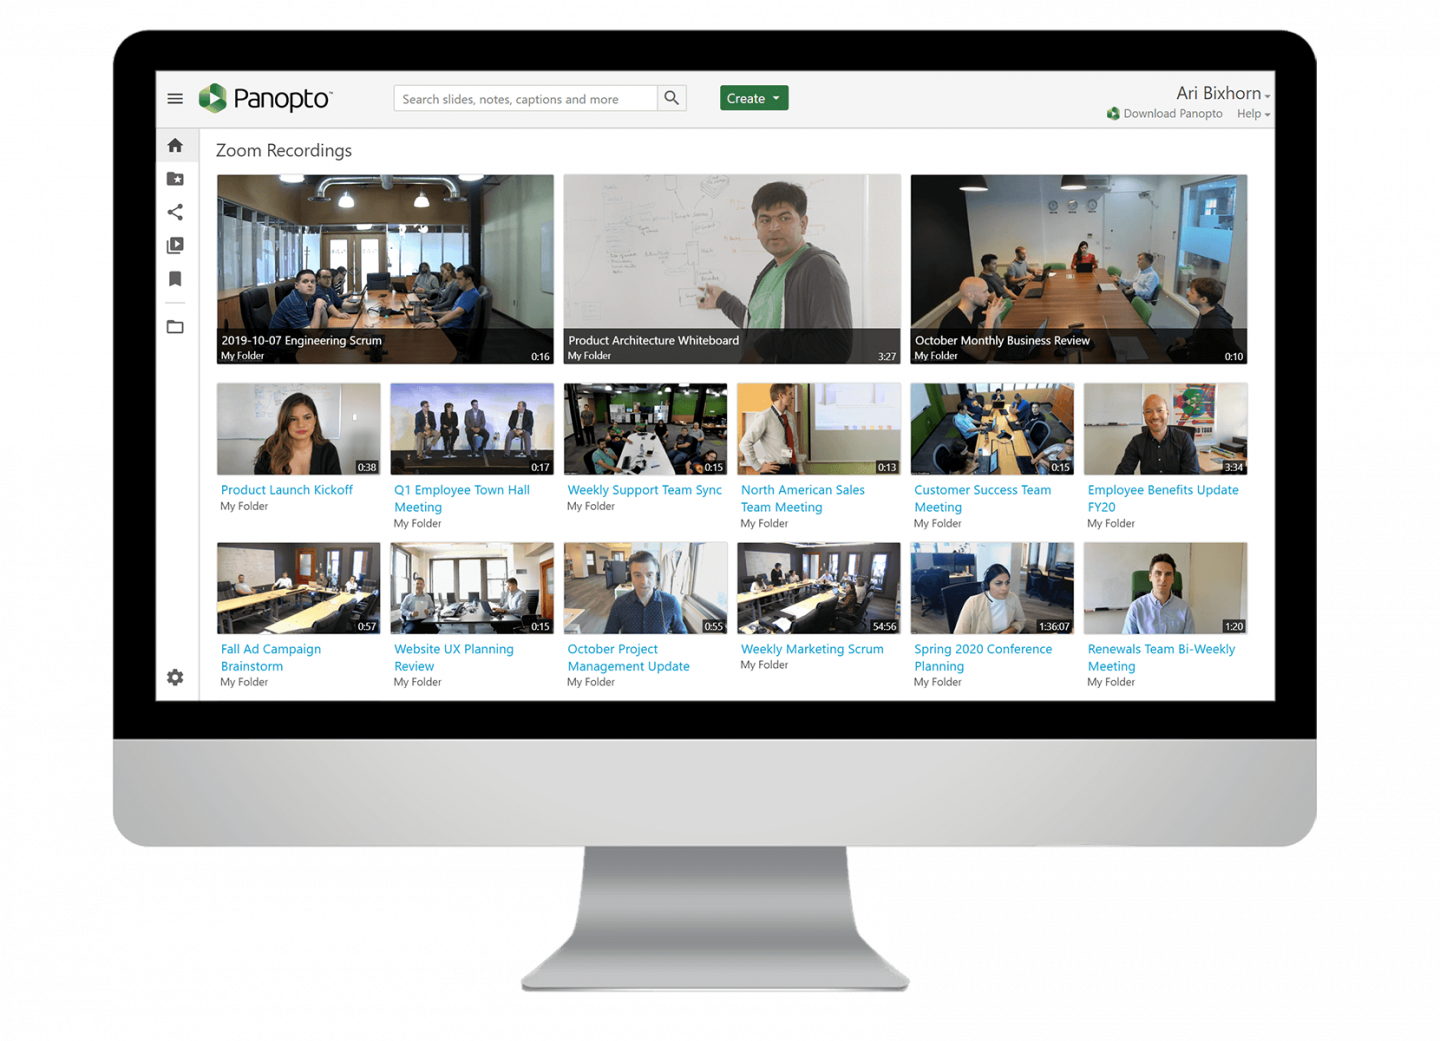 Secure and share meeting recordings at scale with Panopto's meeting intelligence solutions.